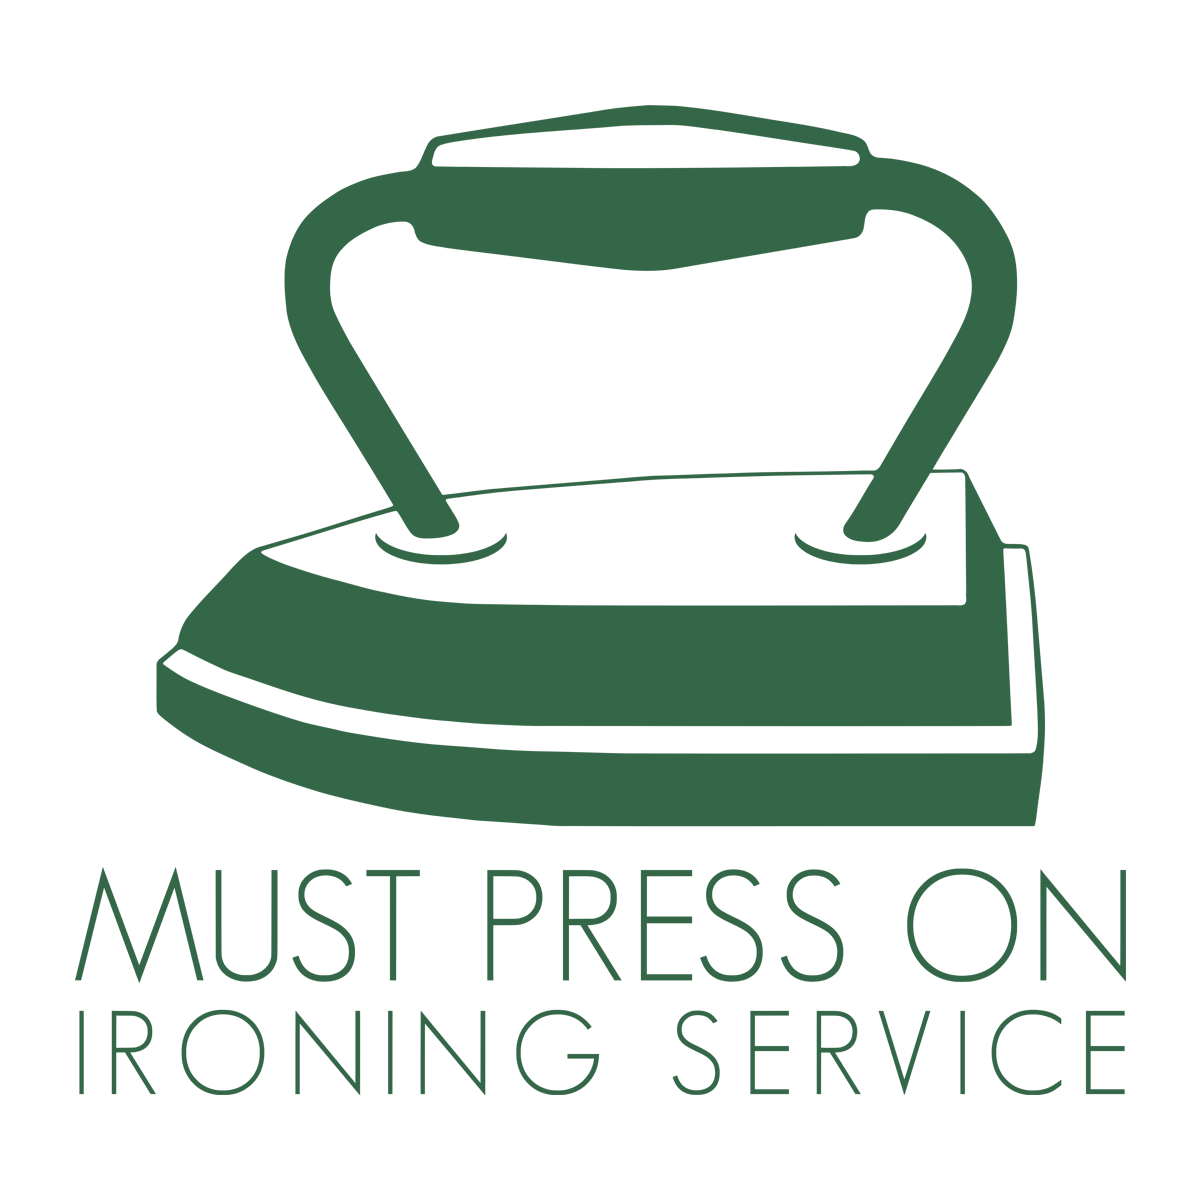 Must Press On Ironing Business Logo - logo design by PixelDuck